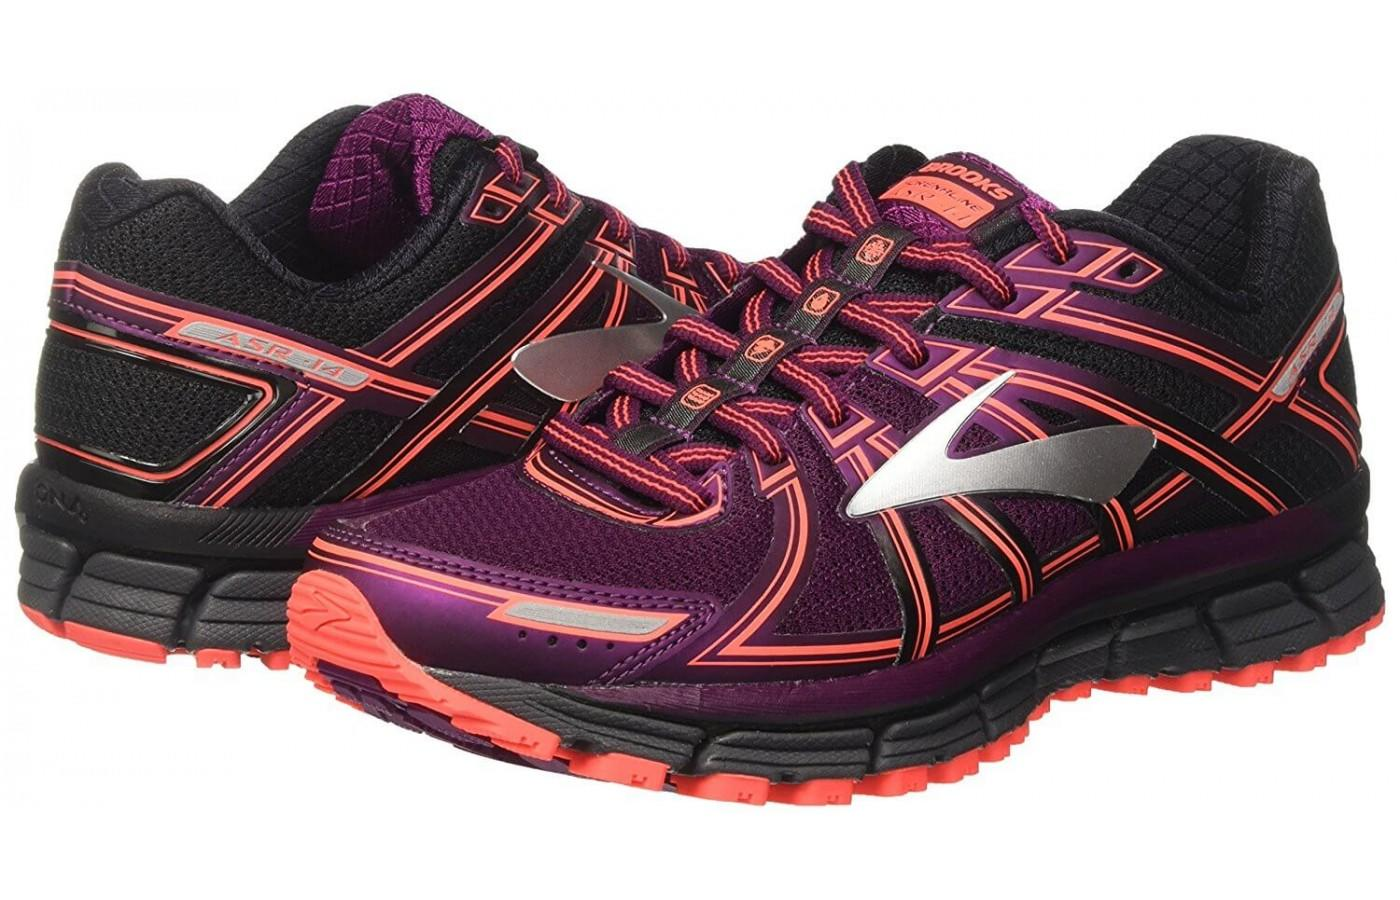 At the time of release, the Adrenaline ASR 14 only come in one color for men and women